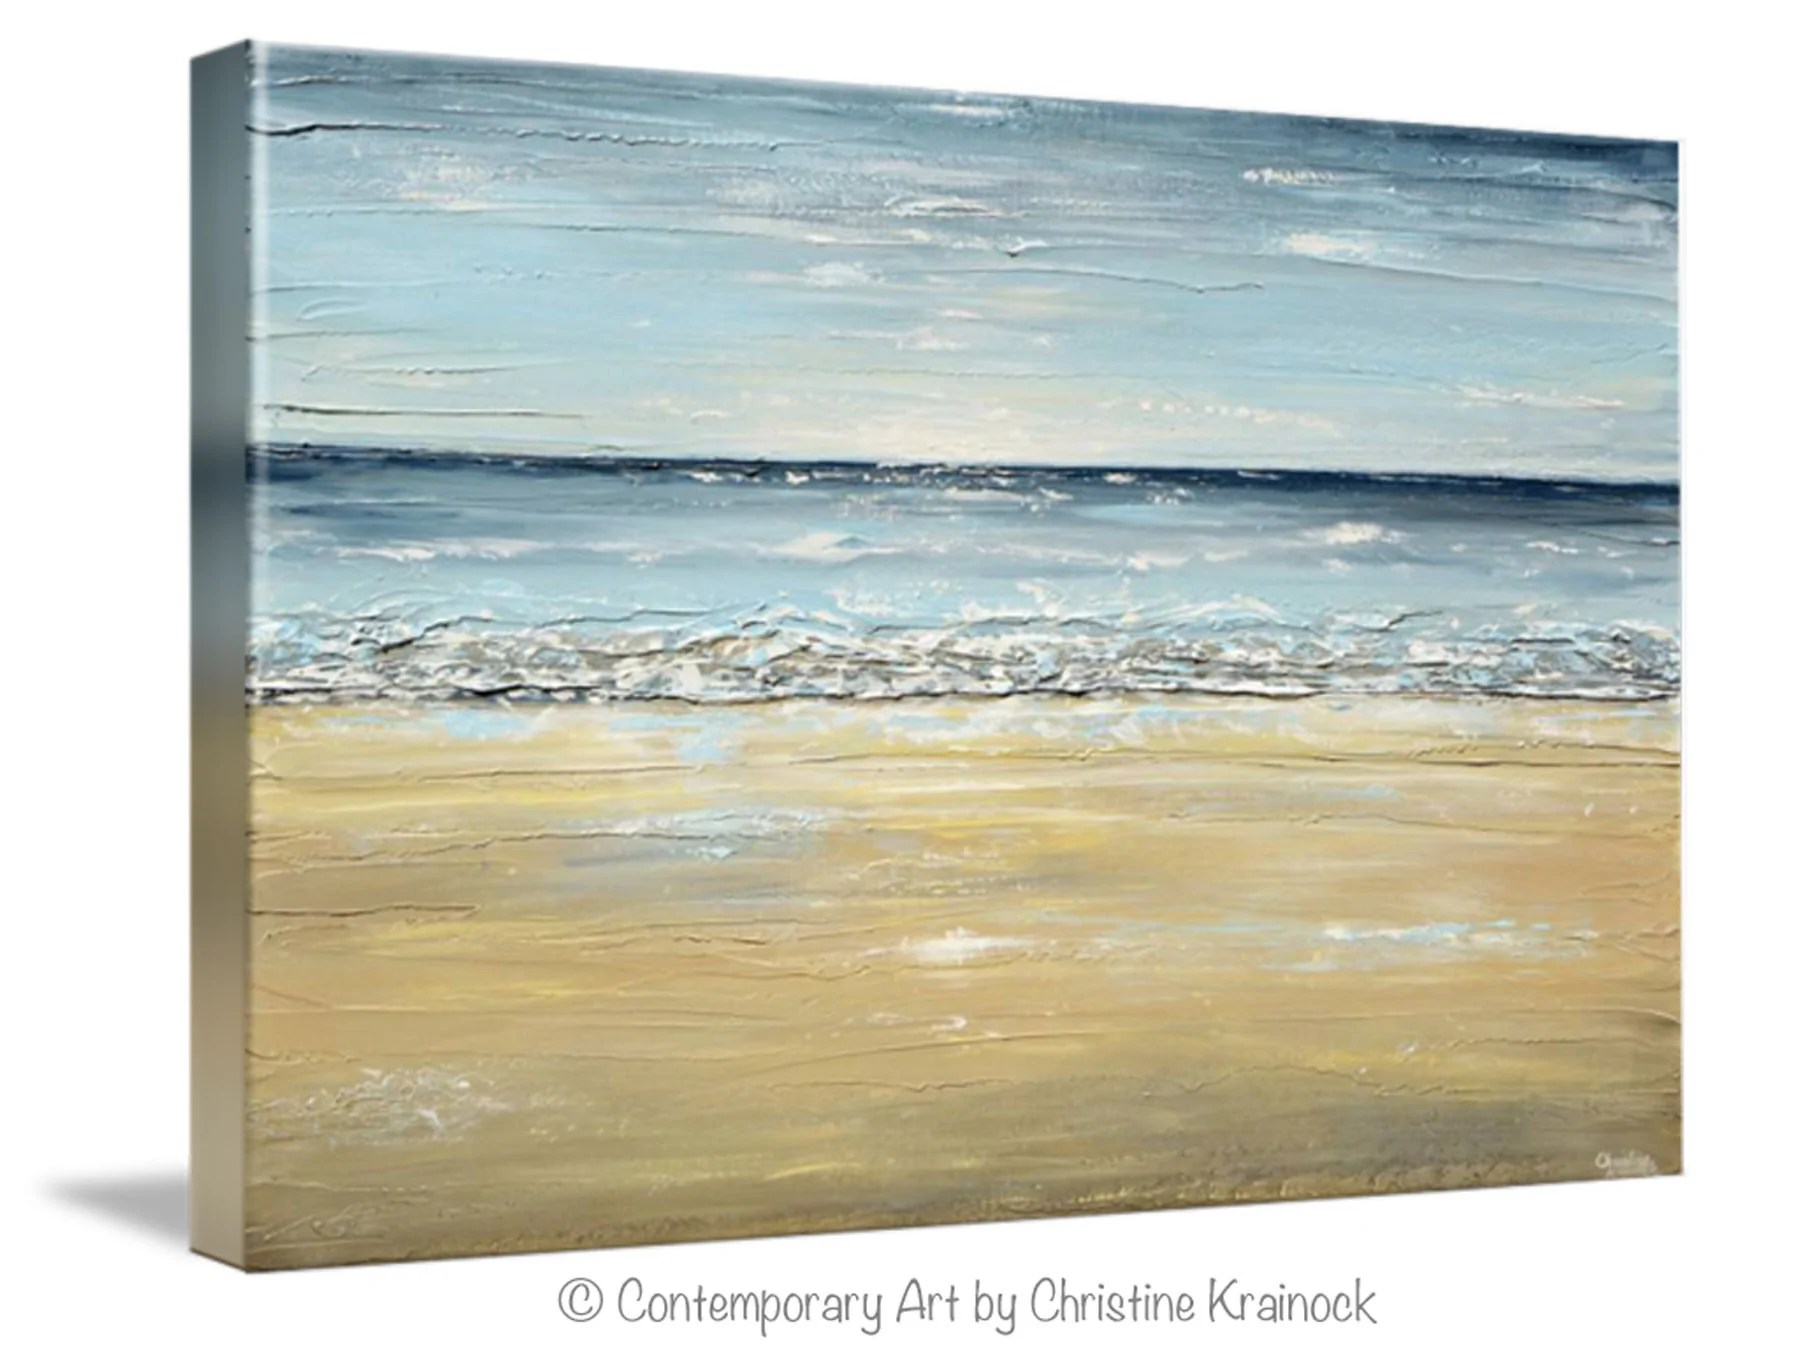 Abstract Art Prints On Canvas Giclee Print Art Abstract Seascape Painting Beach Ocean Blue Beige White Large Canvas Coastal Decor